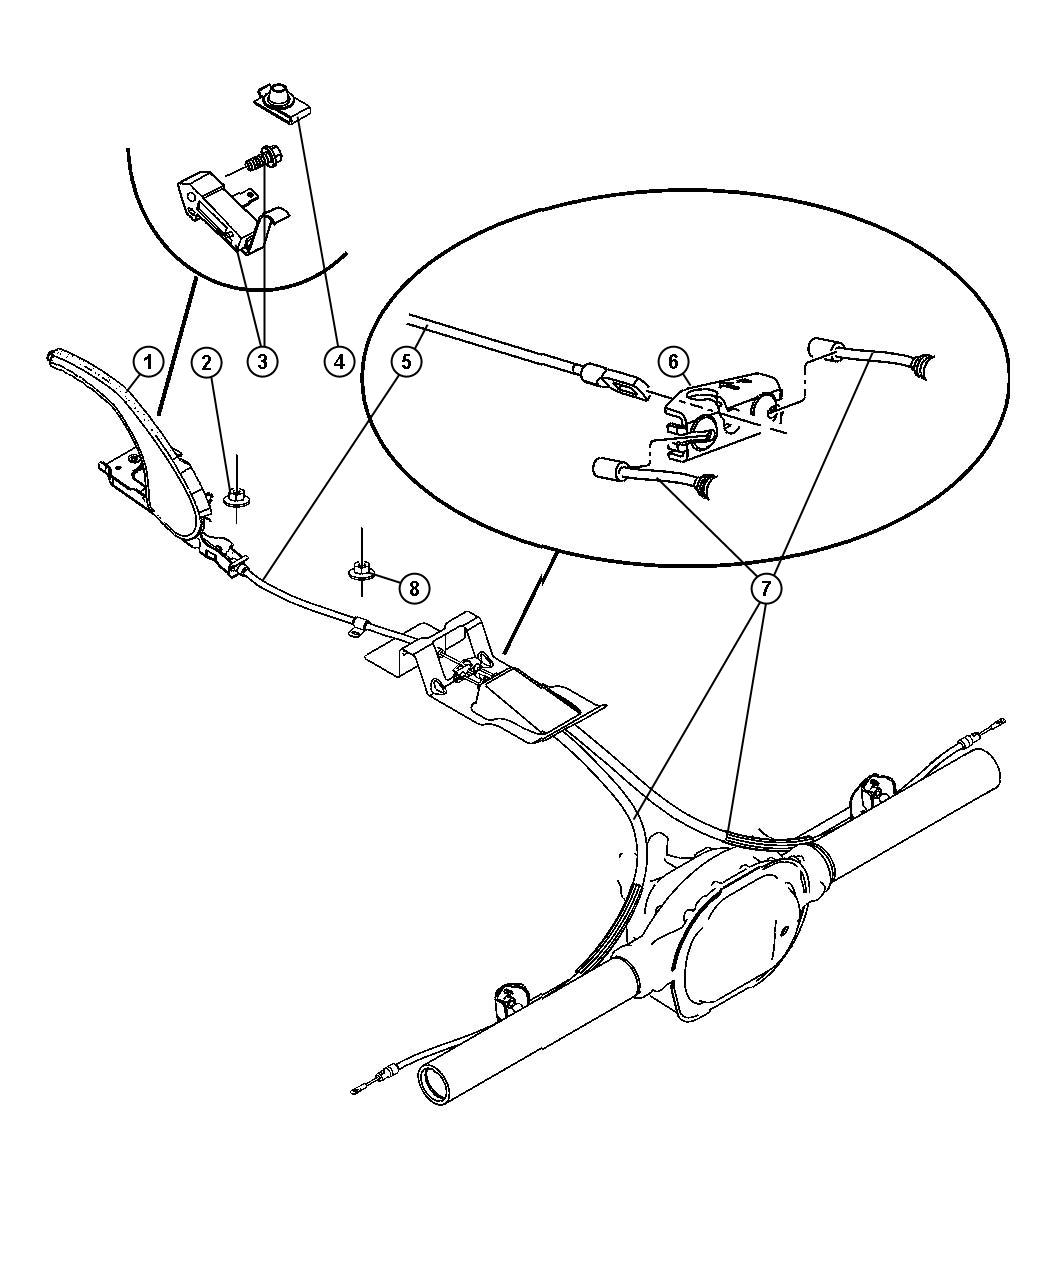 Jeep Grand Cherokee Cable Front Parking Brake Series P Series P S Series P S X